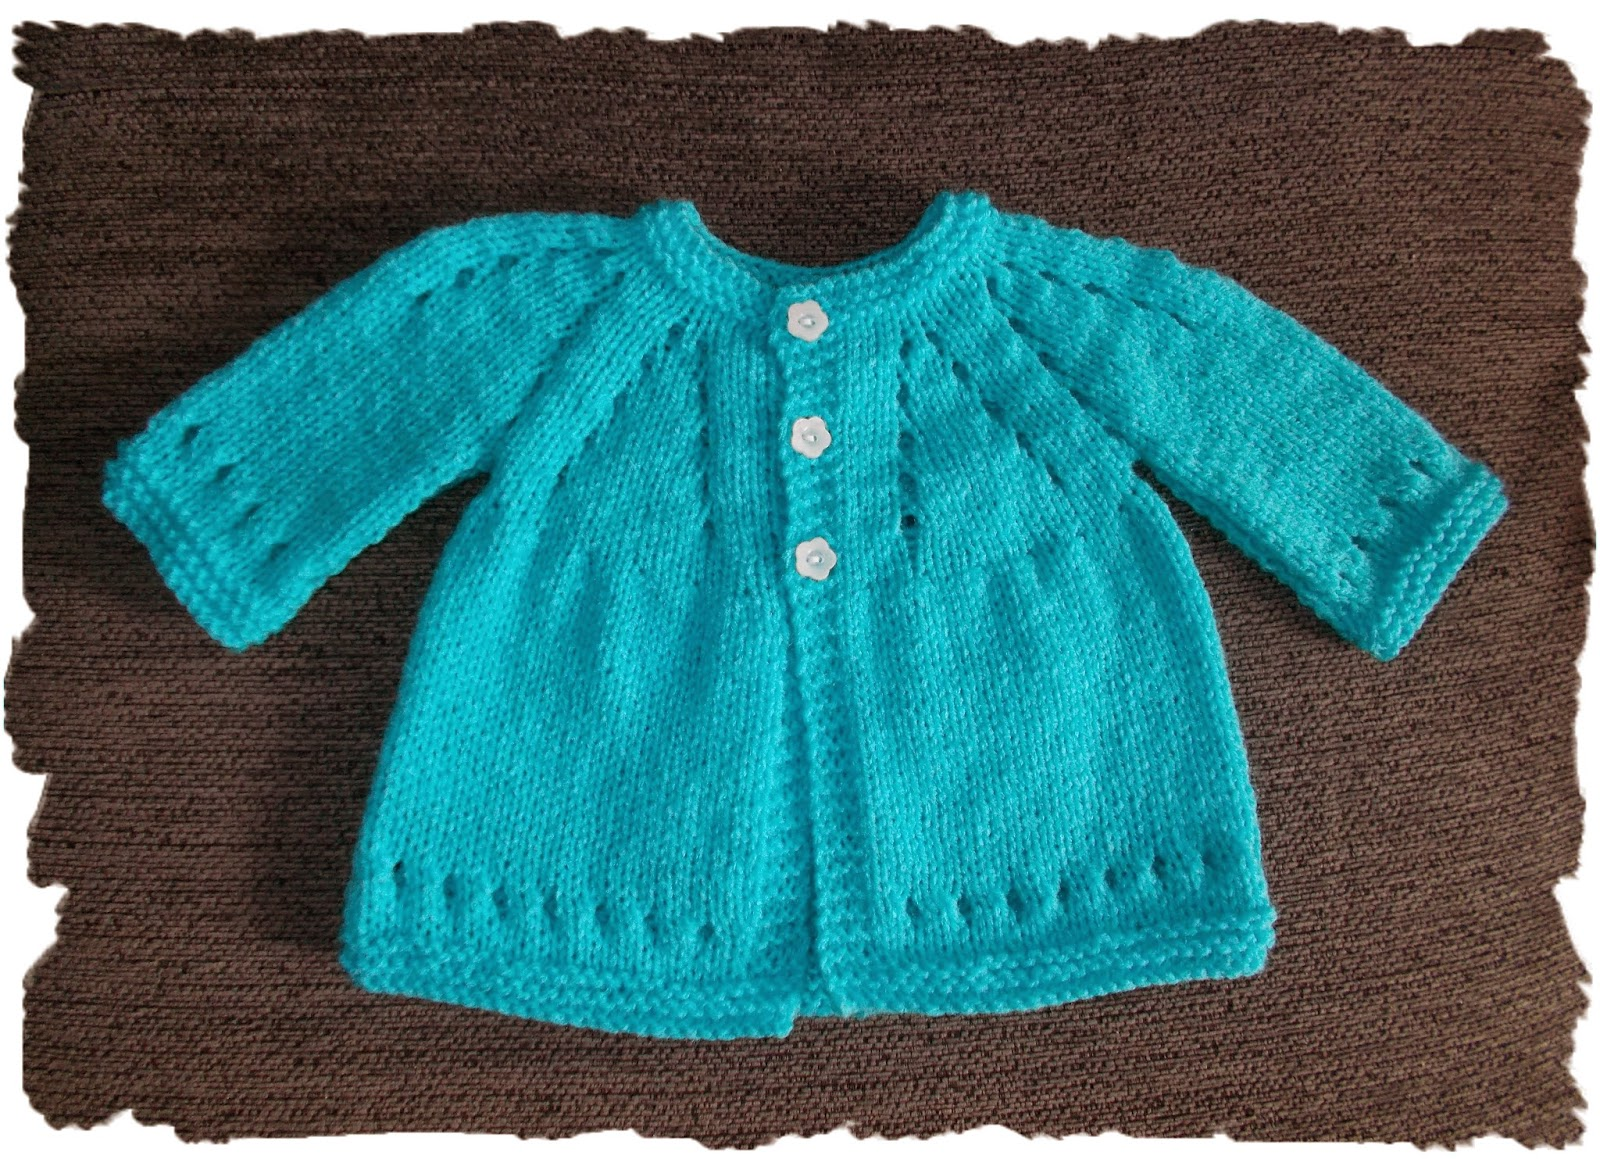 Knitting Pattern All In One Baby Cardigan : mariannas lazy daisy days: Mariannas Famous Top-Down ~ with Sleeves